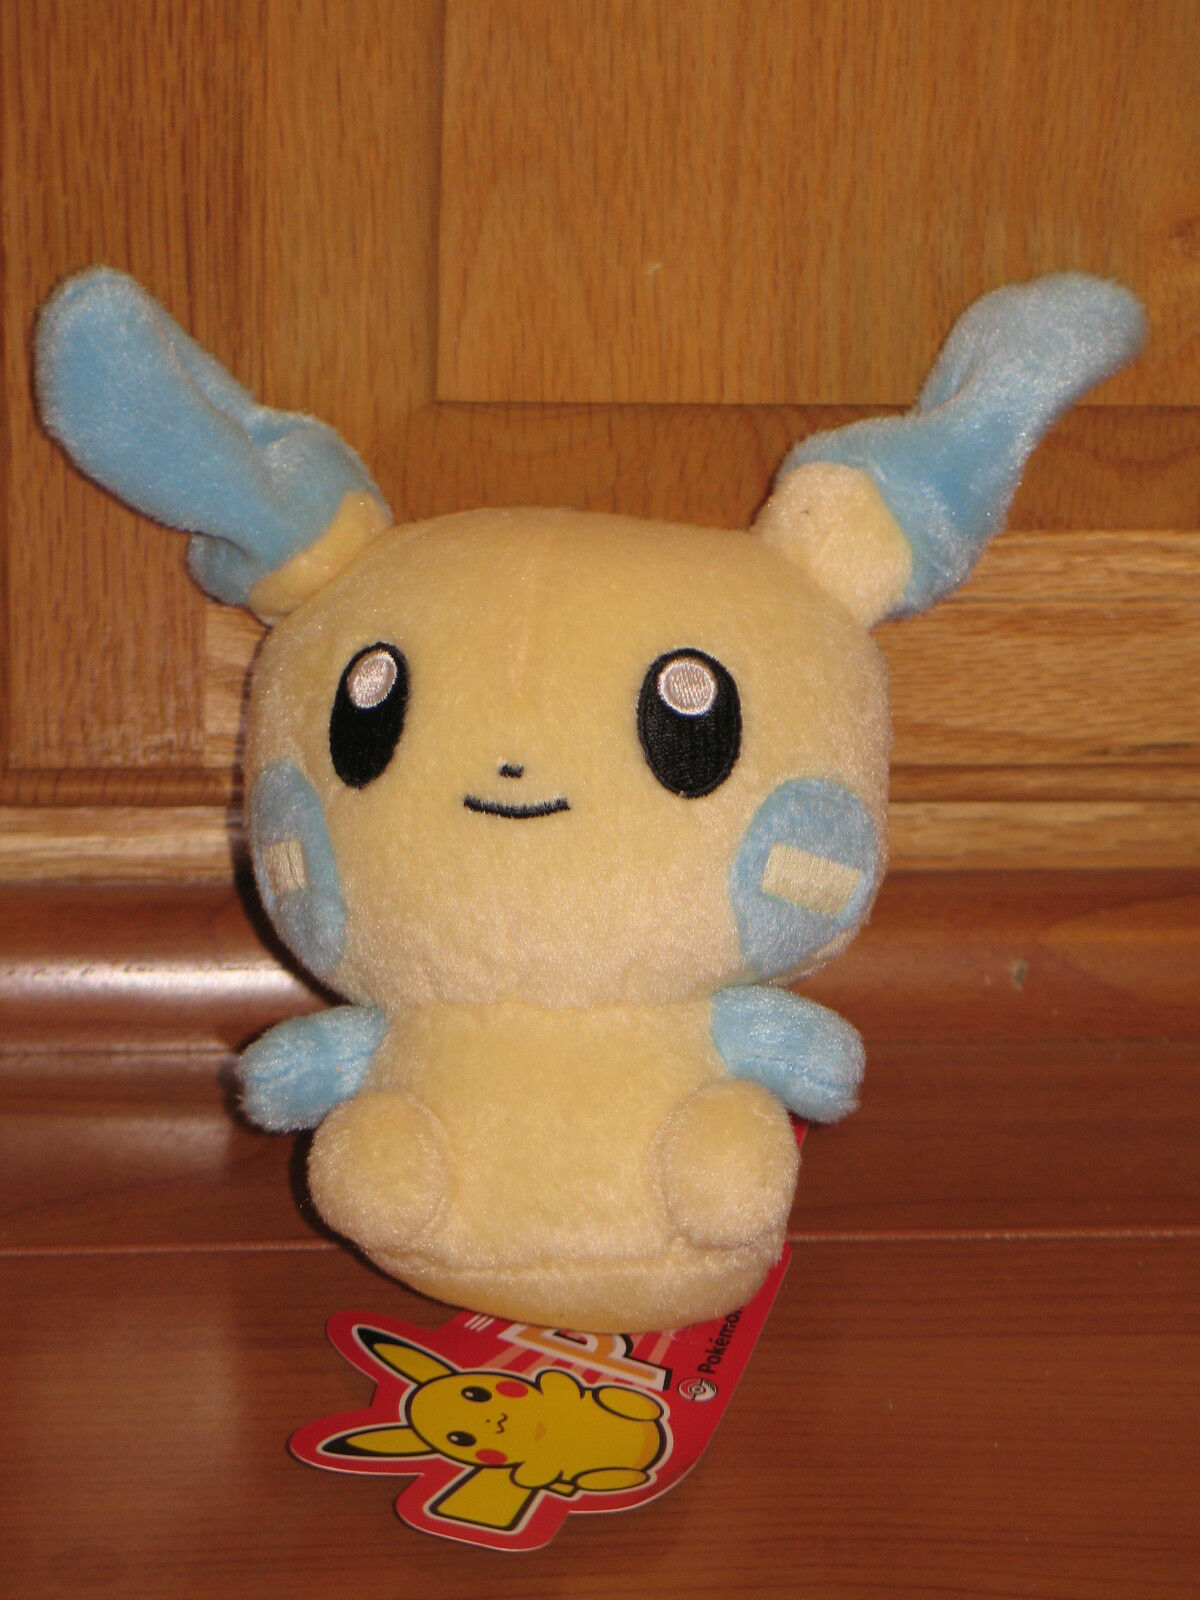 MINUN PokeDoll Pokemon Center Japan Plush Poke Doll Plush Plushie US Seller NEW